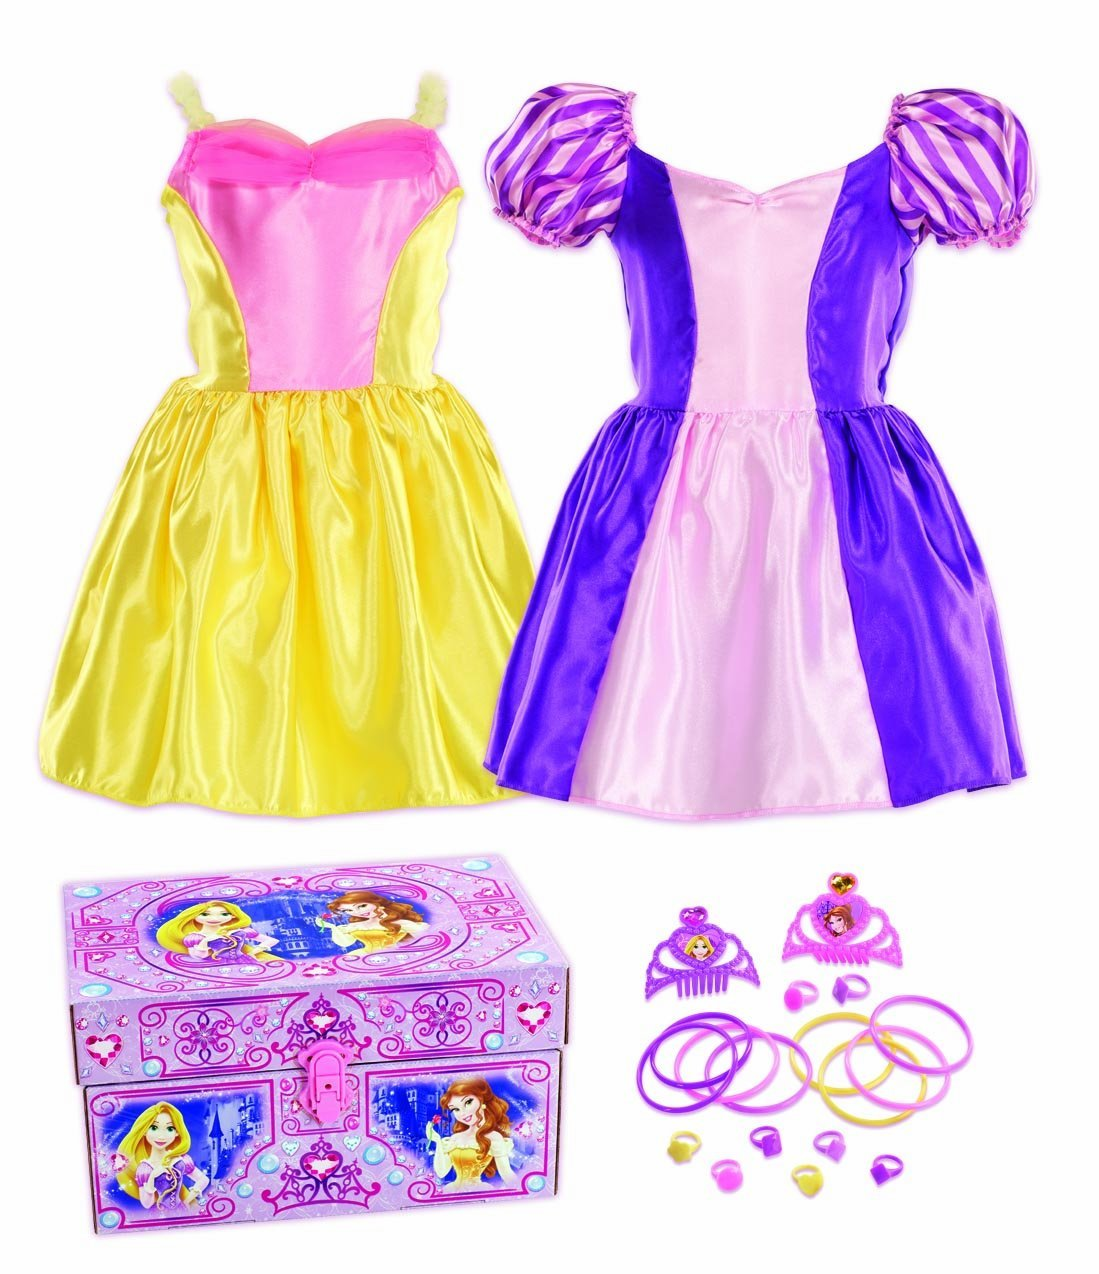 Disney Princess Bling Rapunzel and Belle Dress-Up Trunk